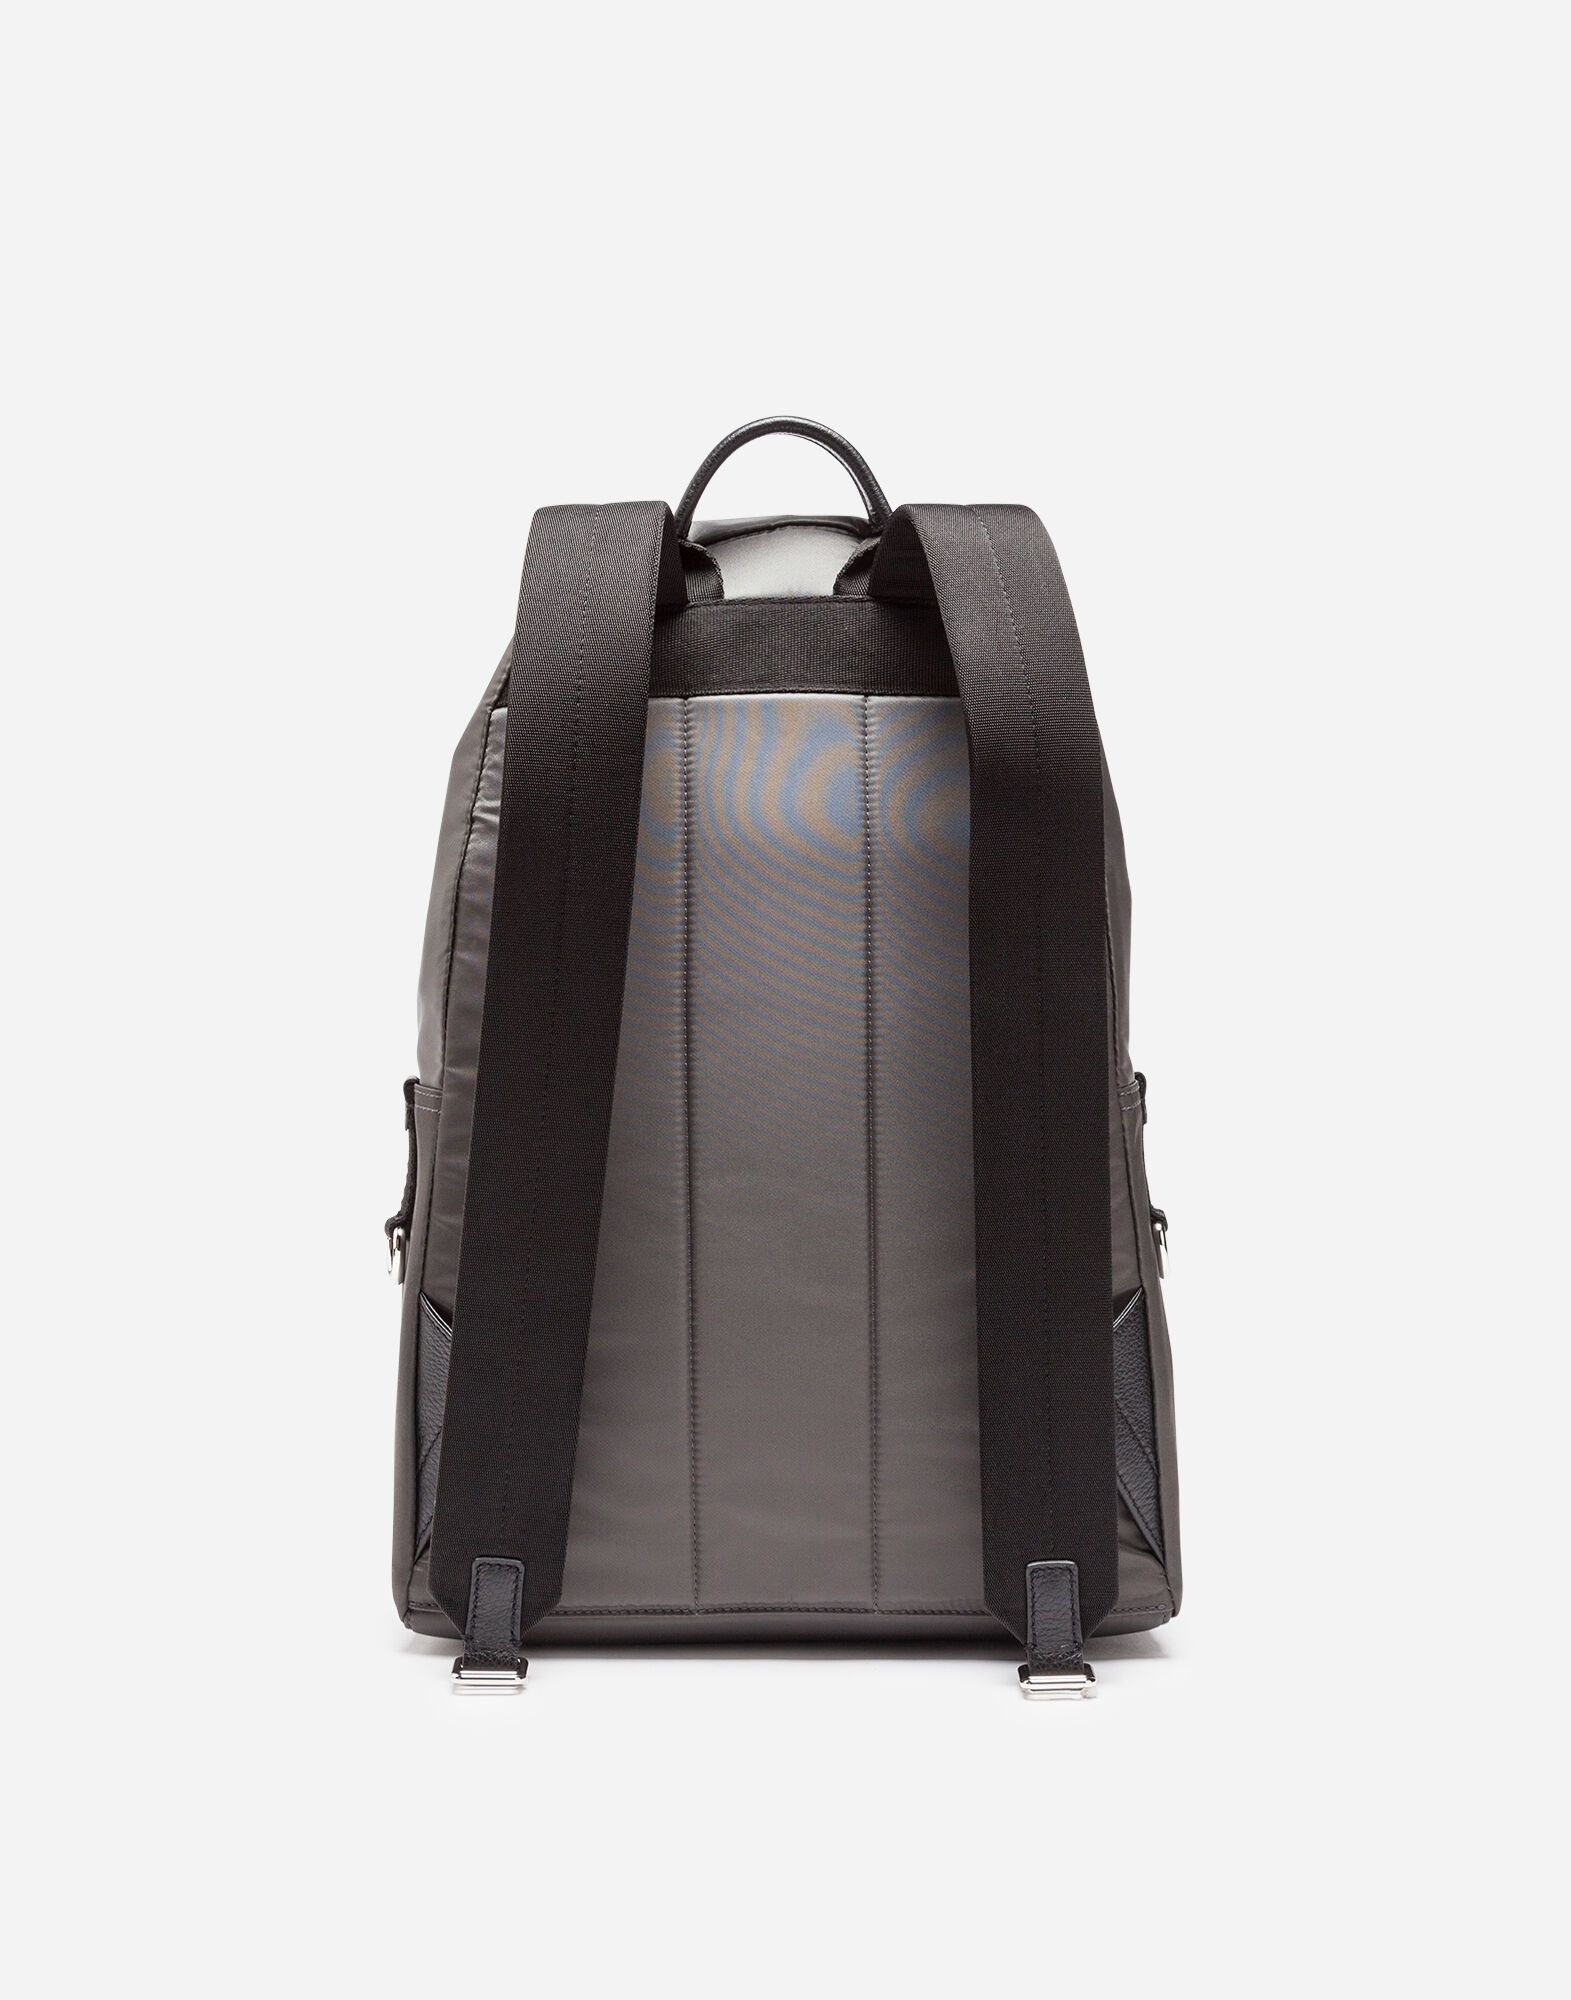 NYLON VULCANO BACKPACK WITH PATCHES OF THE DESIGNERS